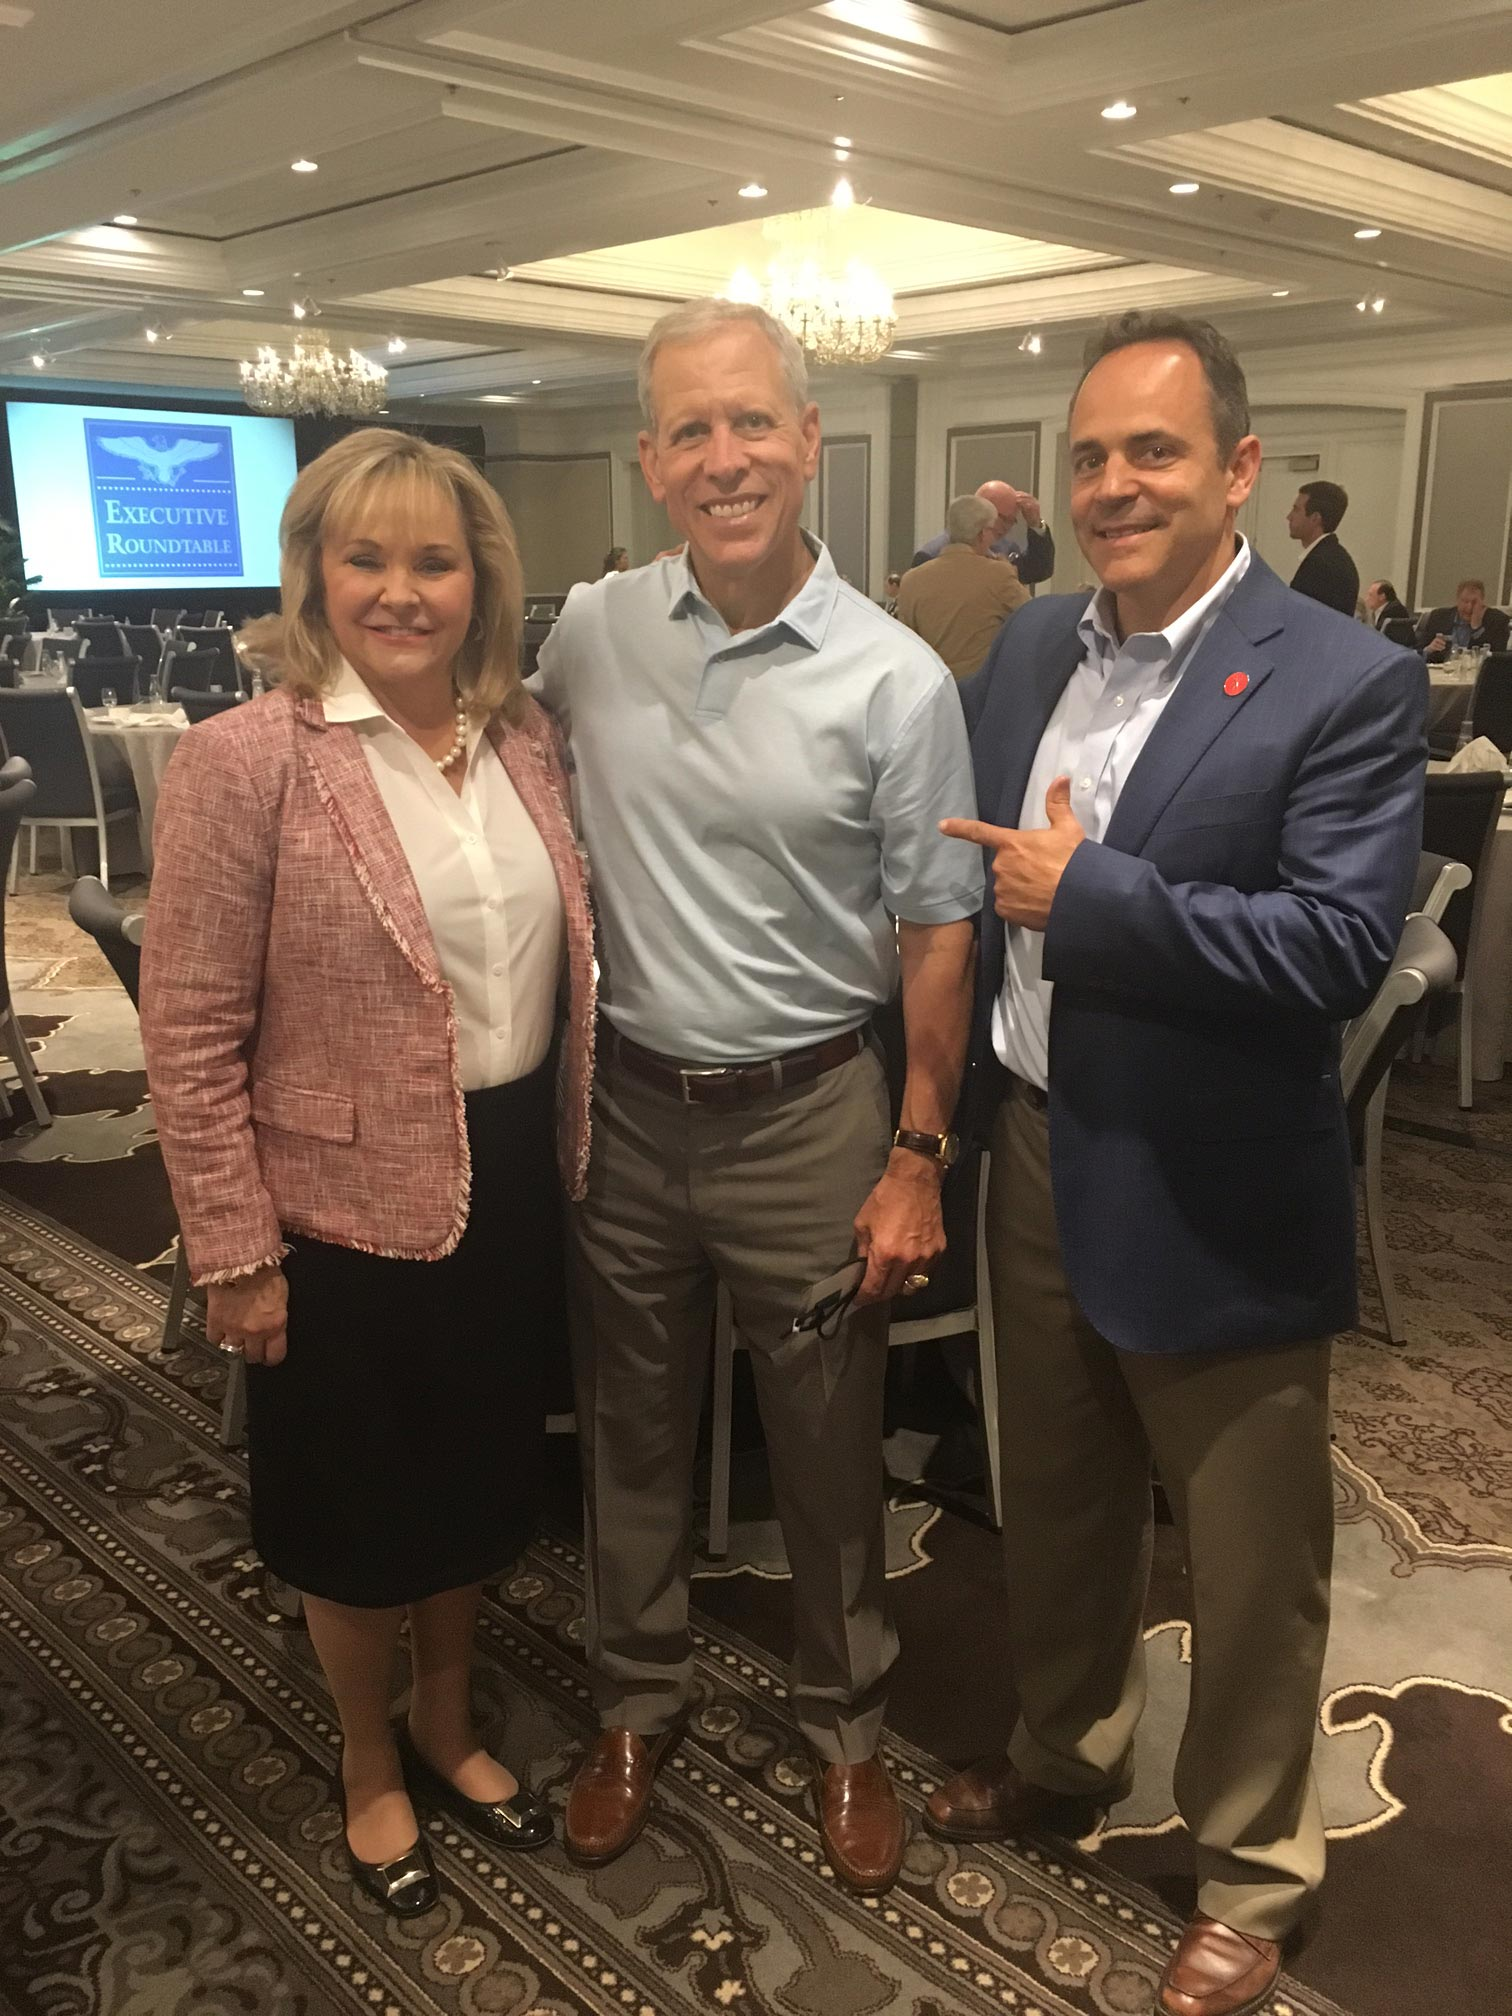 Gov-Mary-Fallin-Oklahoma-and-Gov-Matt-Bevin-Kentucky-.jpg